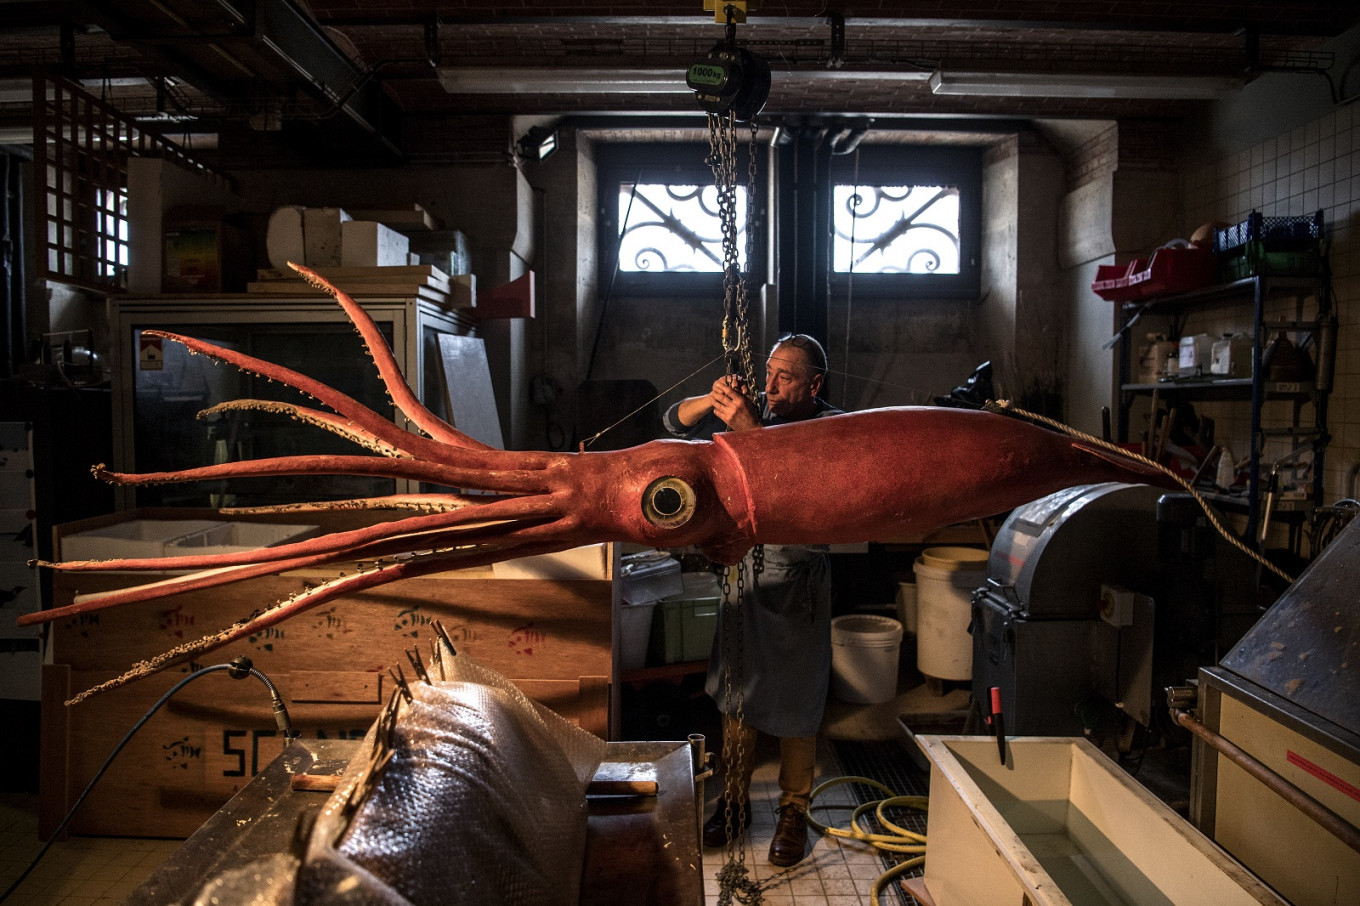 Giant squid gets makeover before showtime